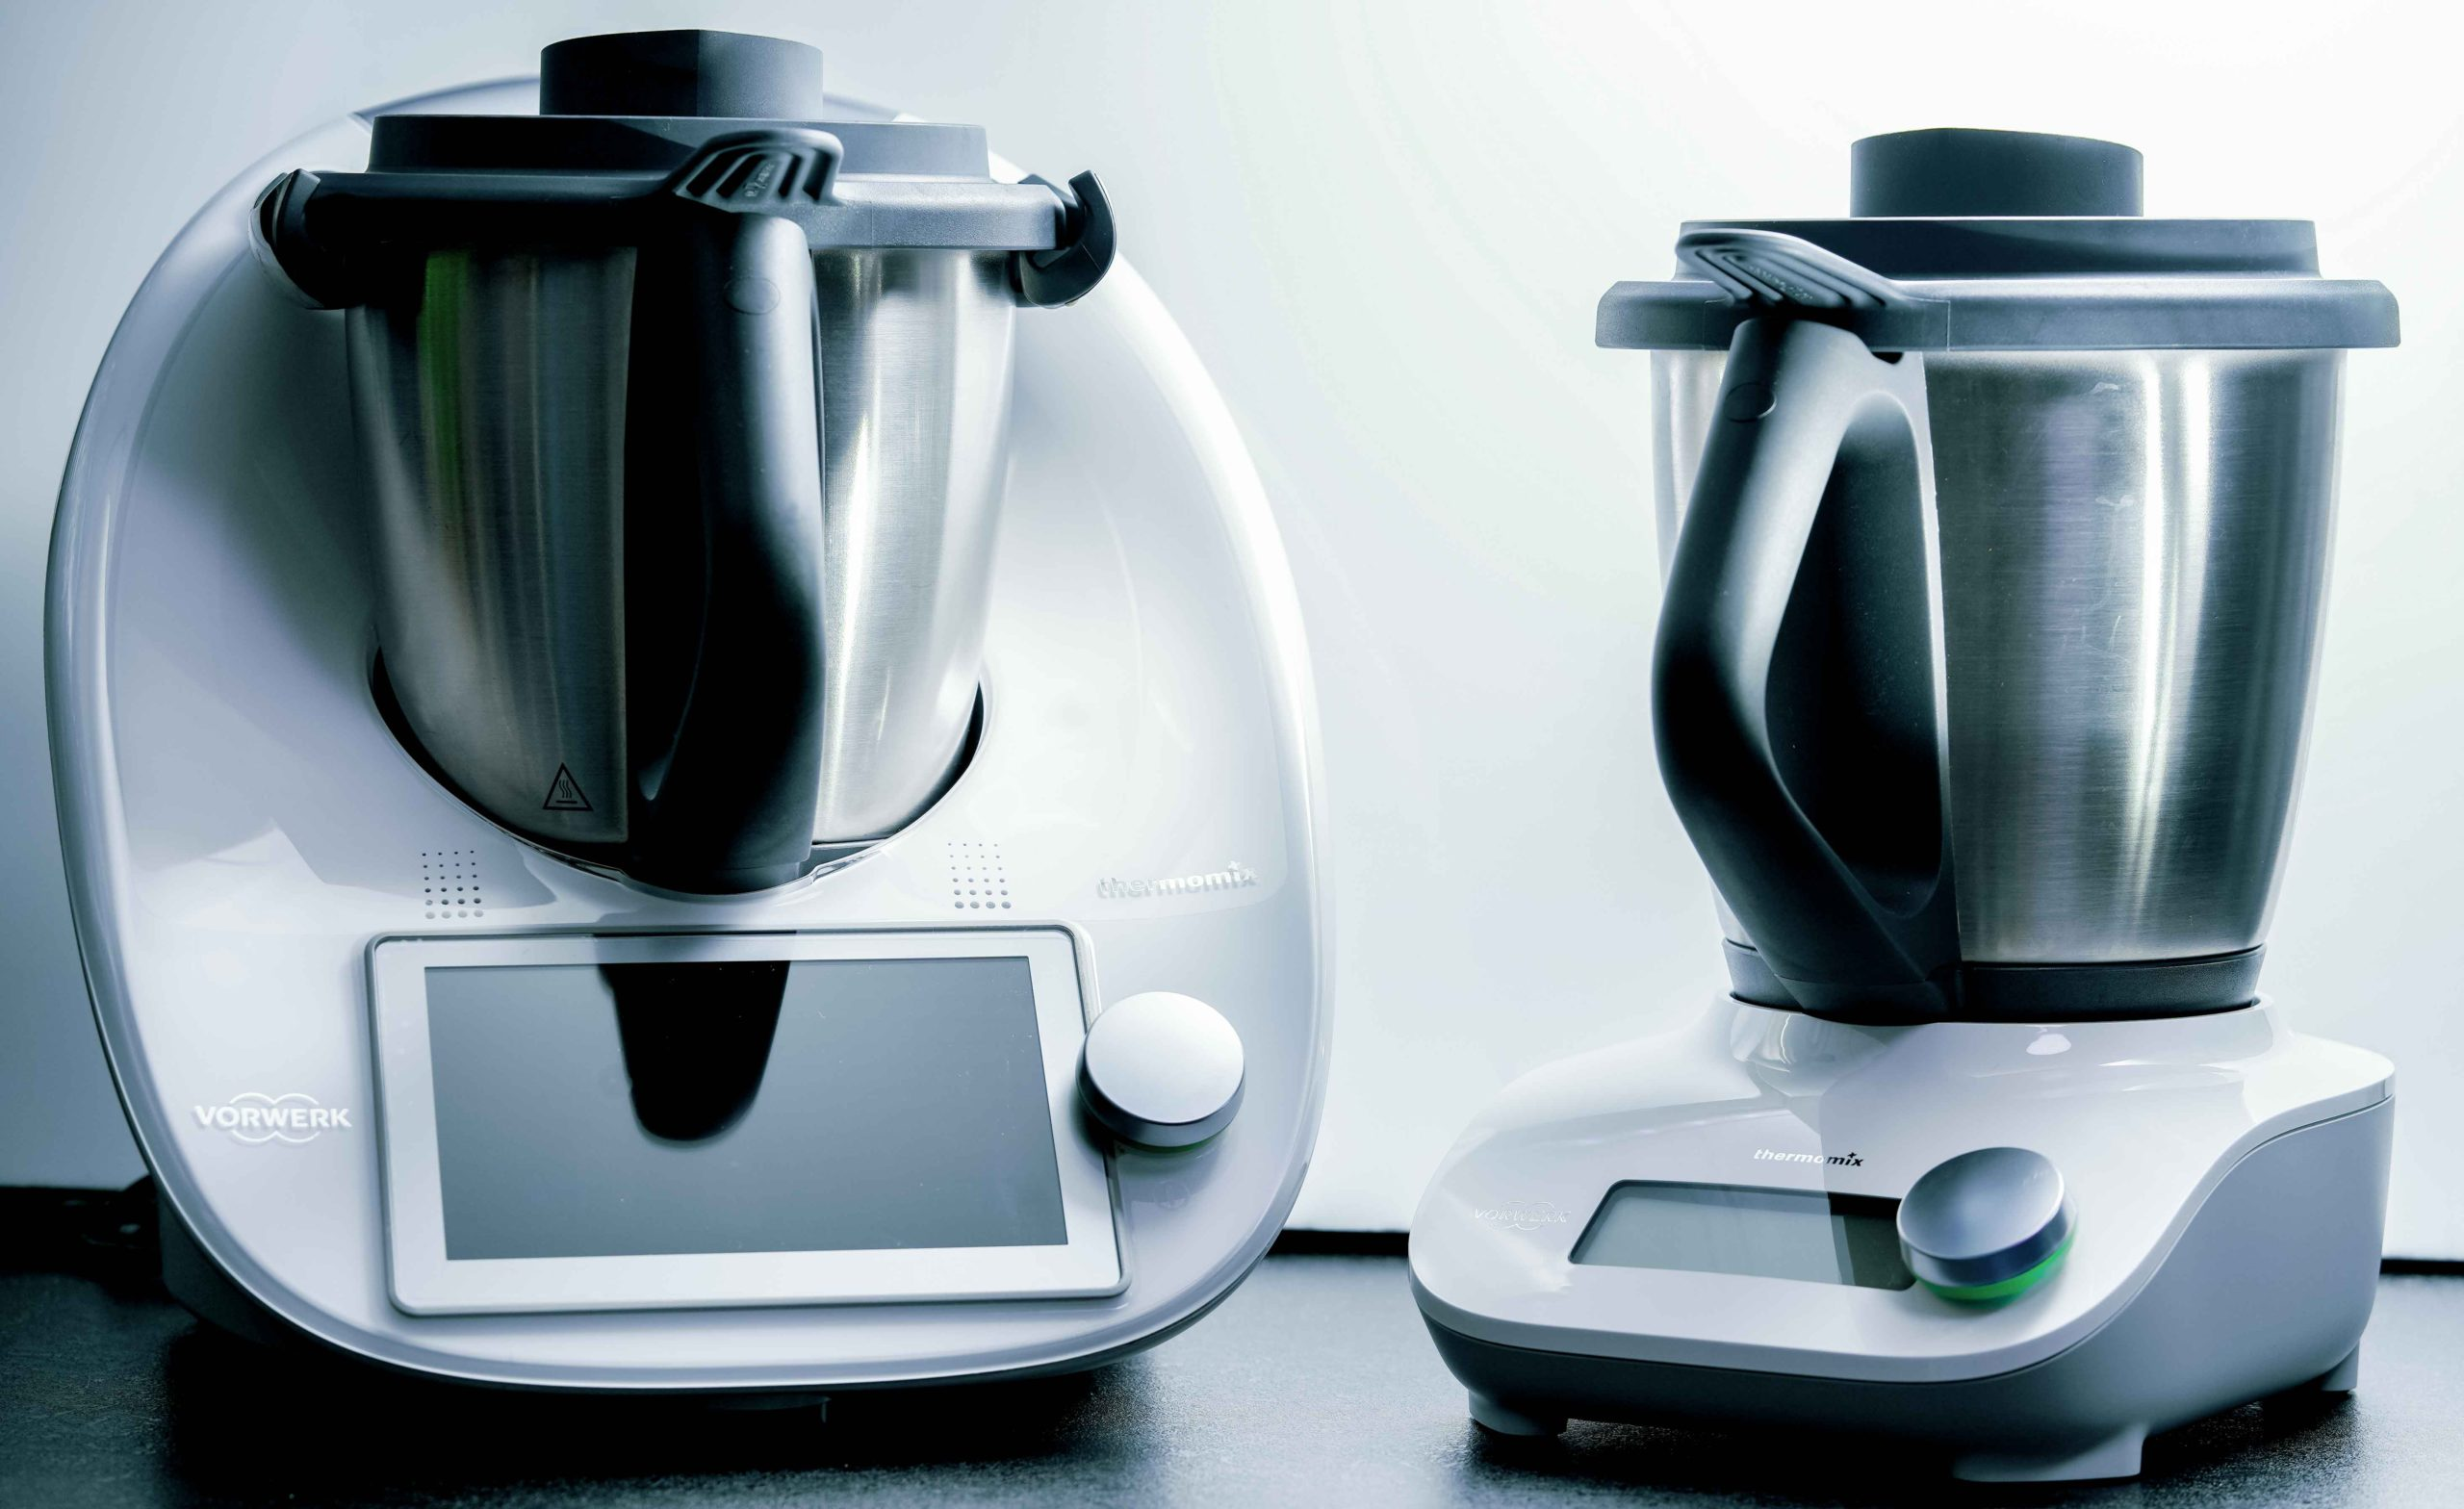 thermomix-na-36-rat-0%